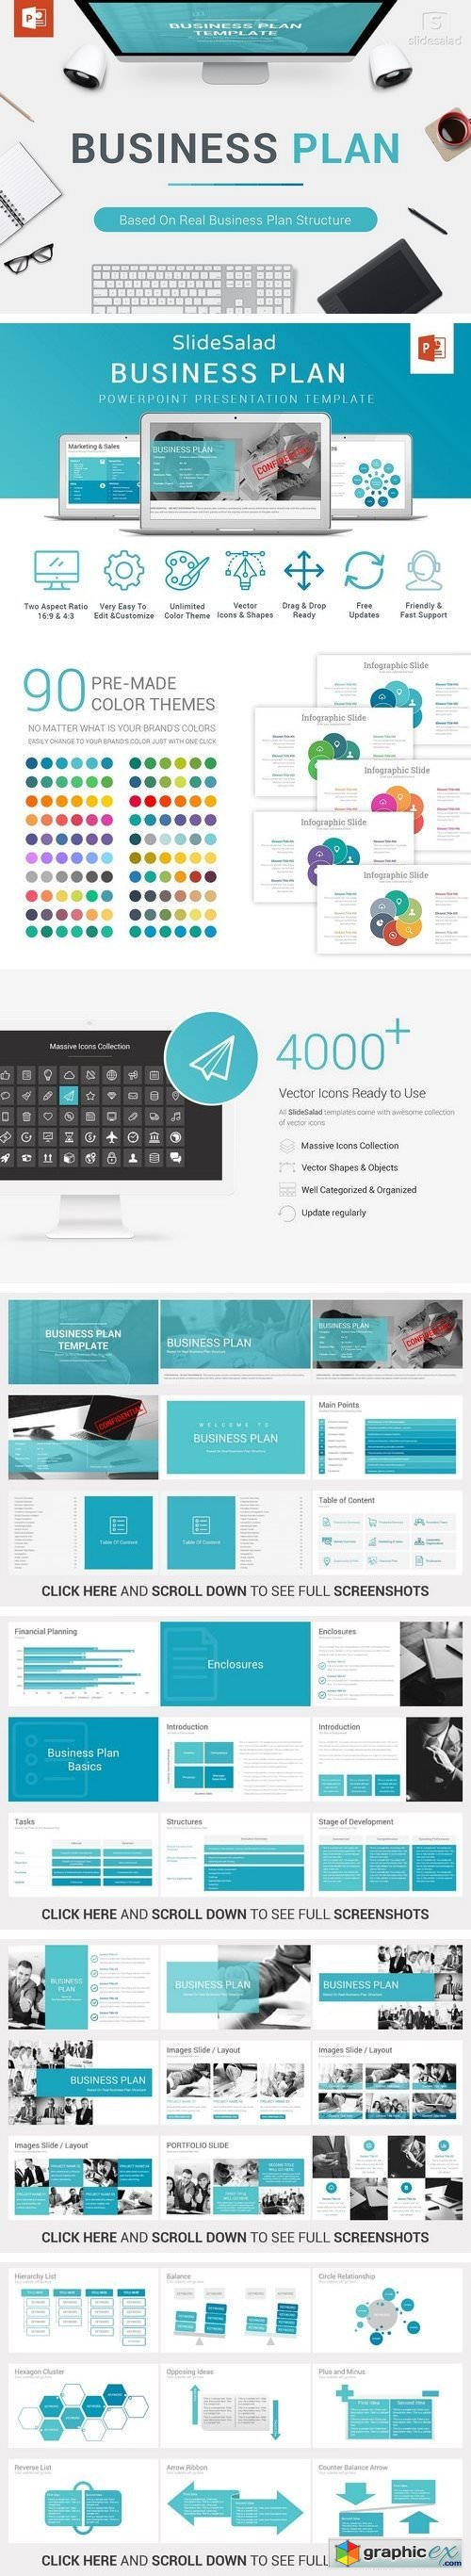 Business plan powerpoint template 1982832 free download vector business plan powerpoint template 1982832 toneelgroepblik Images